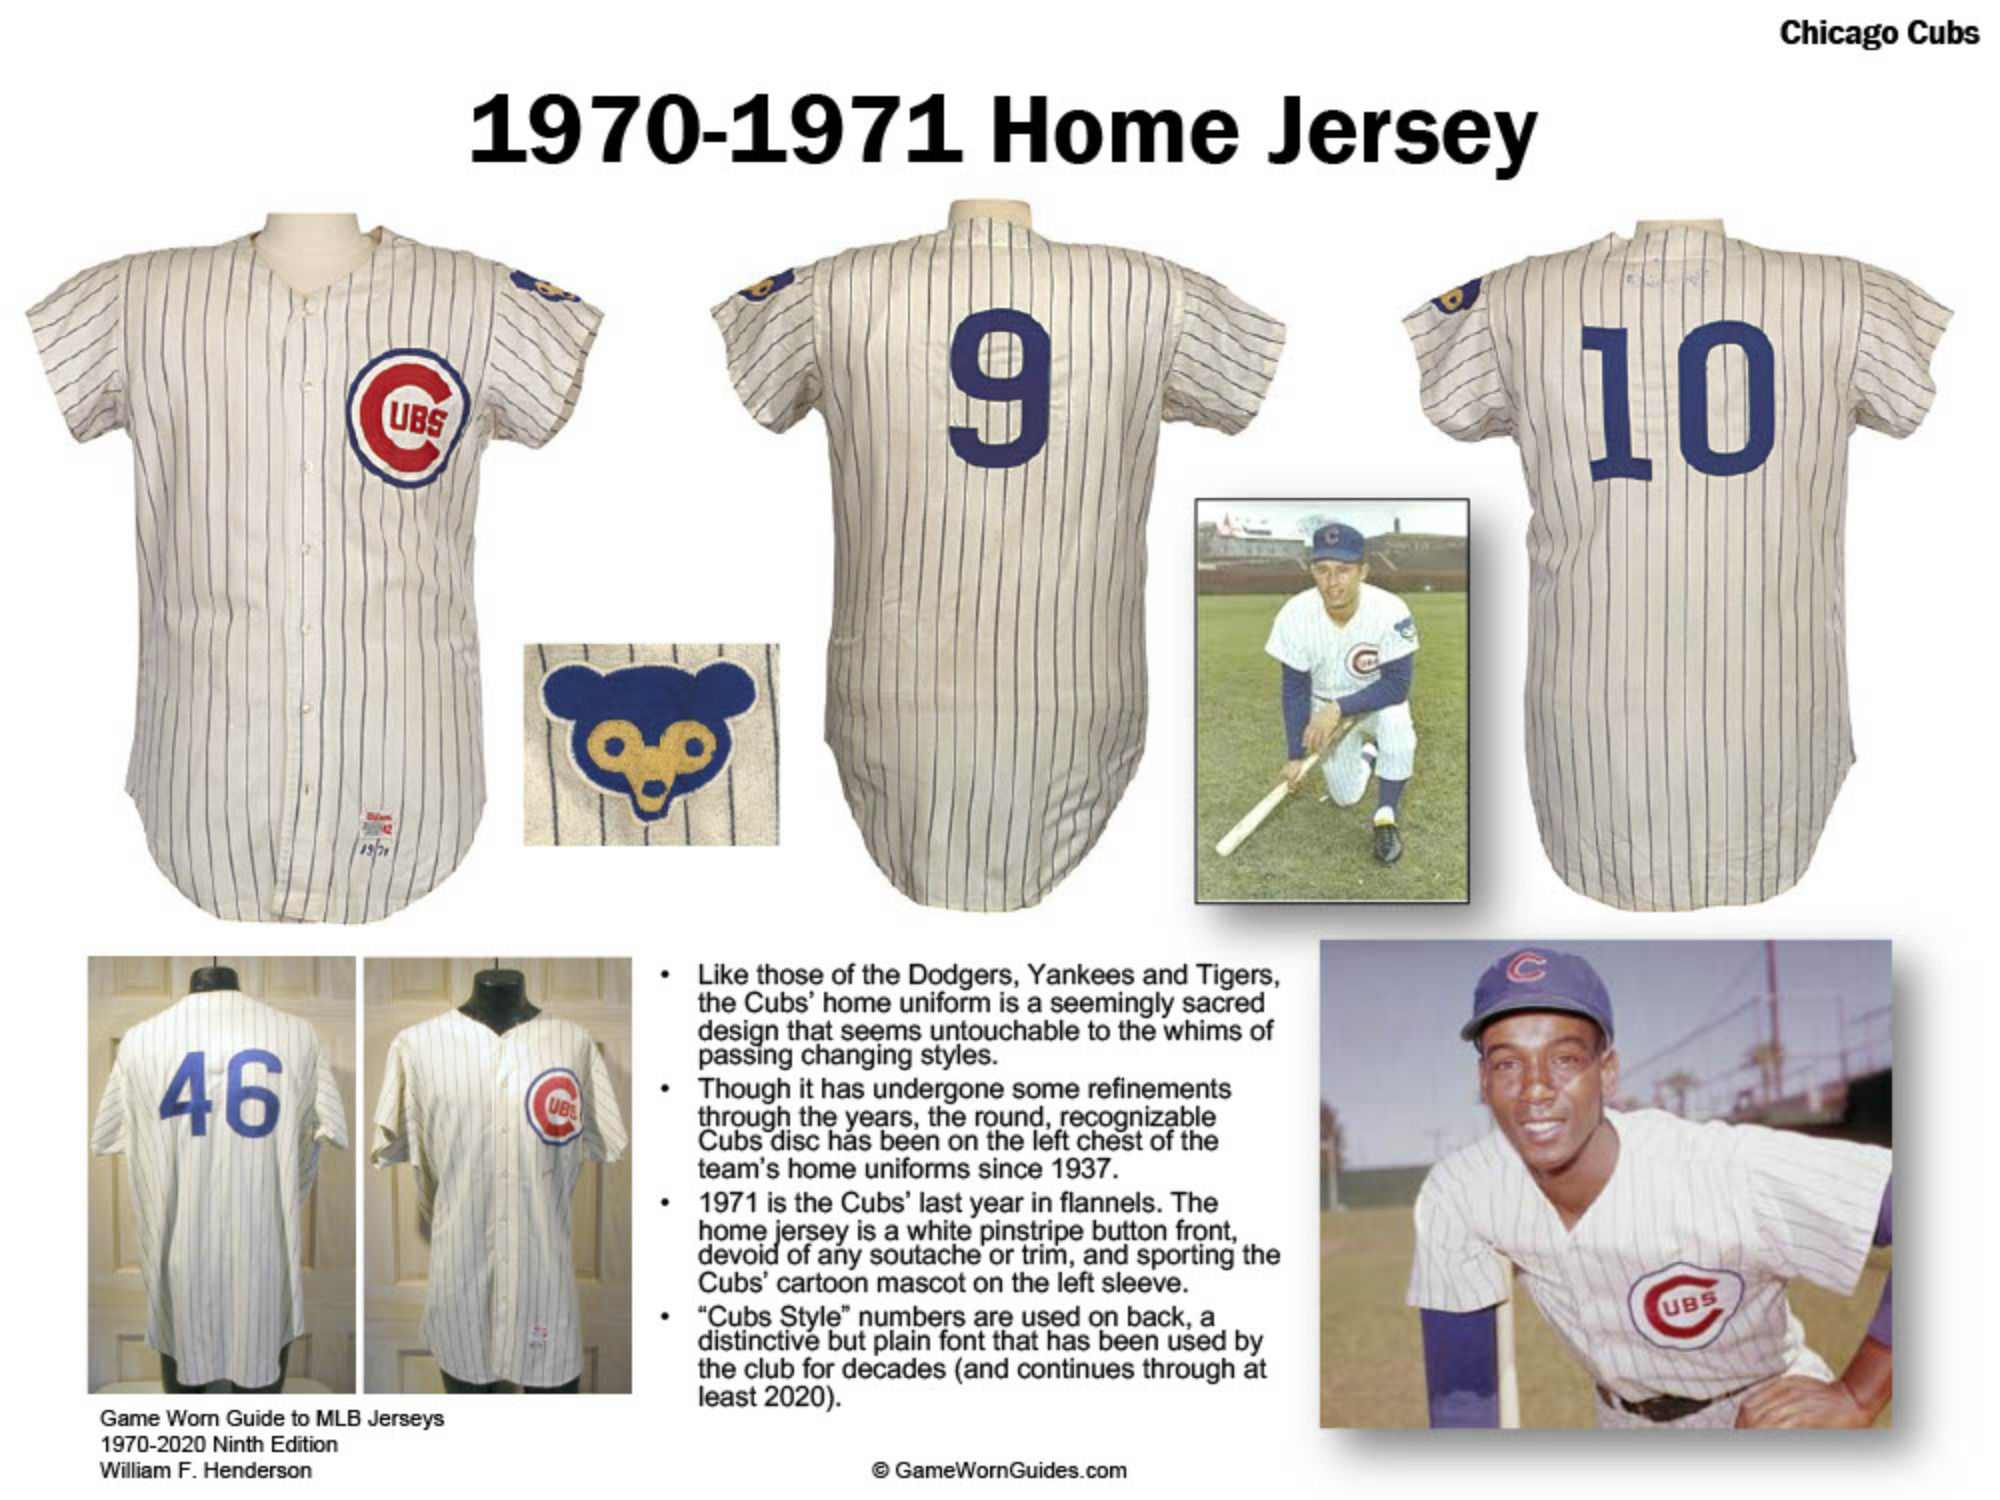 Game Worn Guide to Chicago Cubs Jerseys (1970-2020)